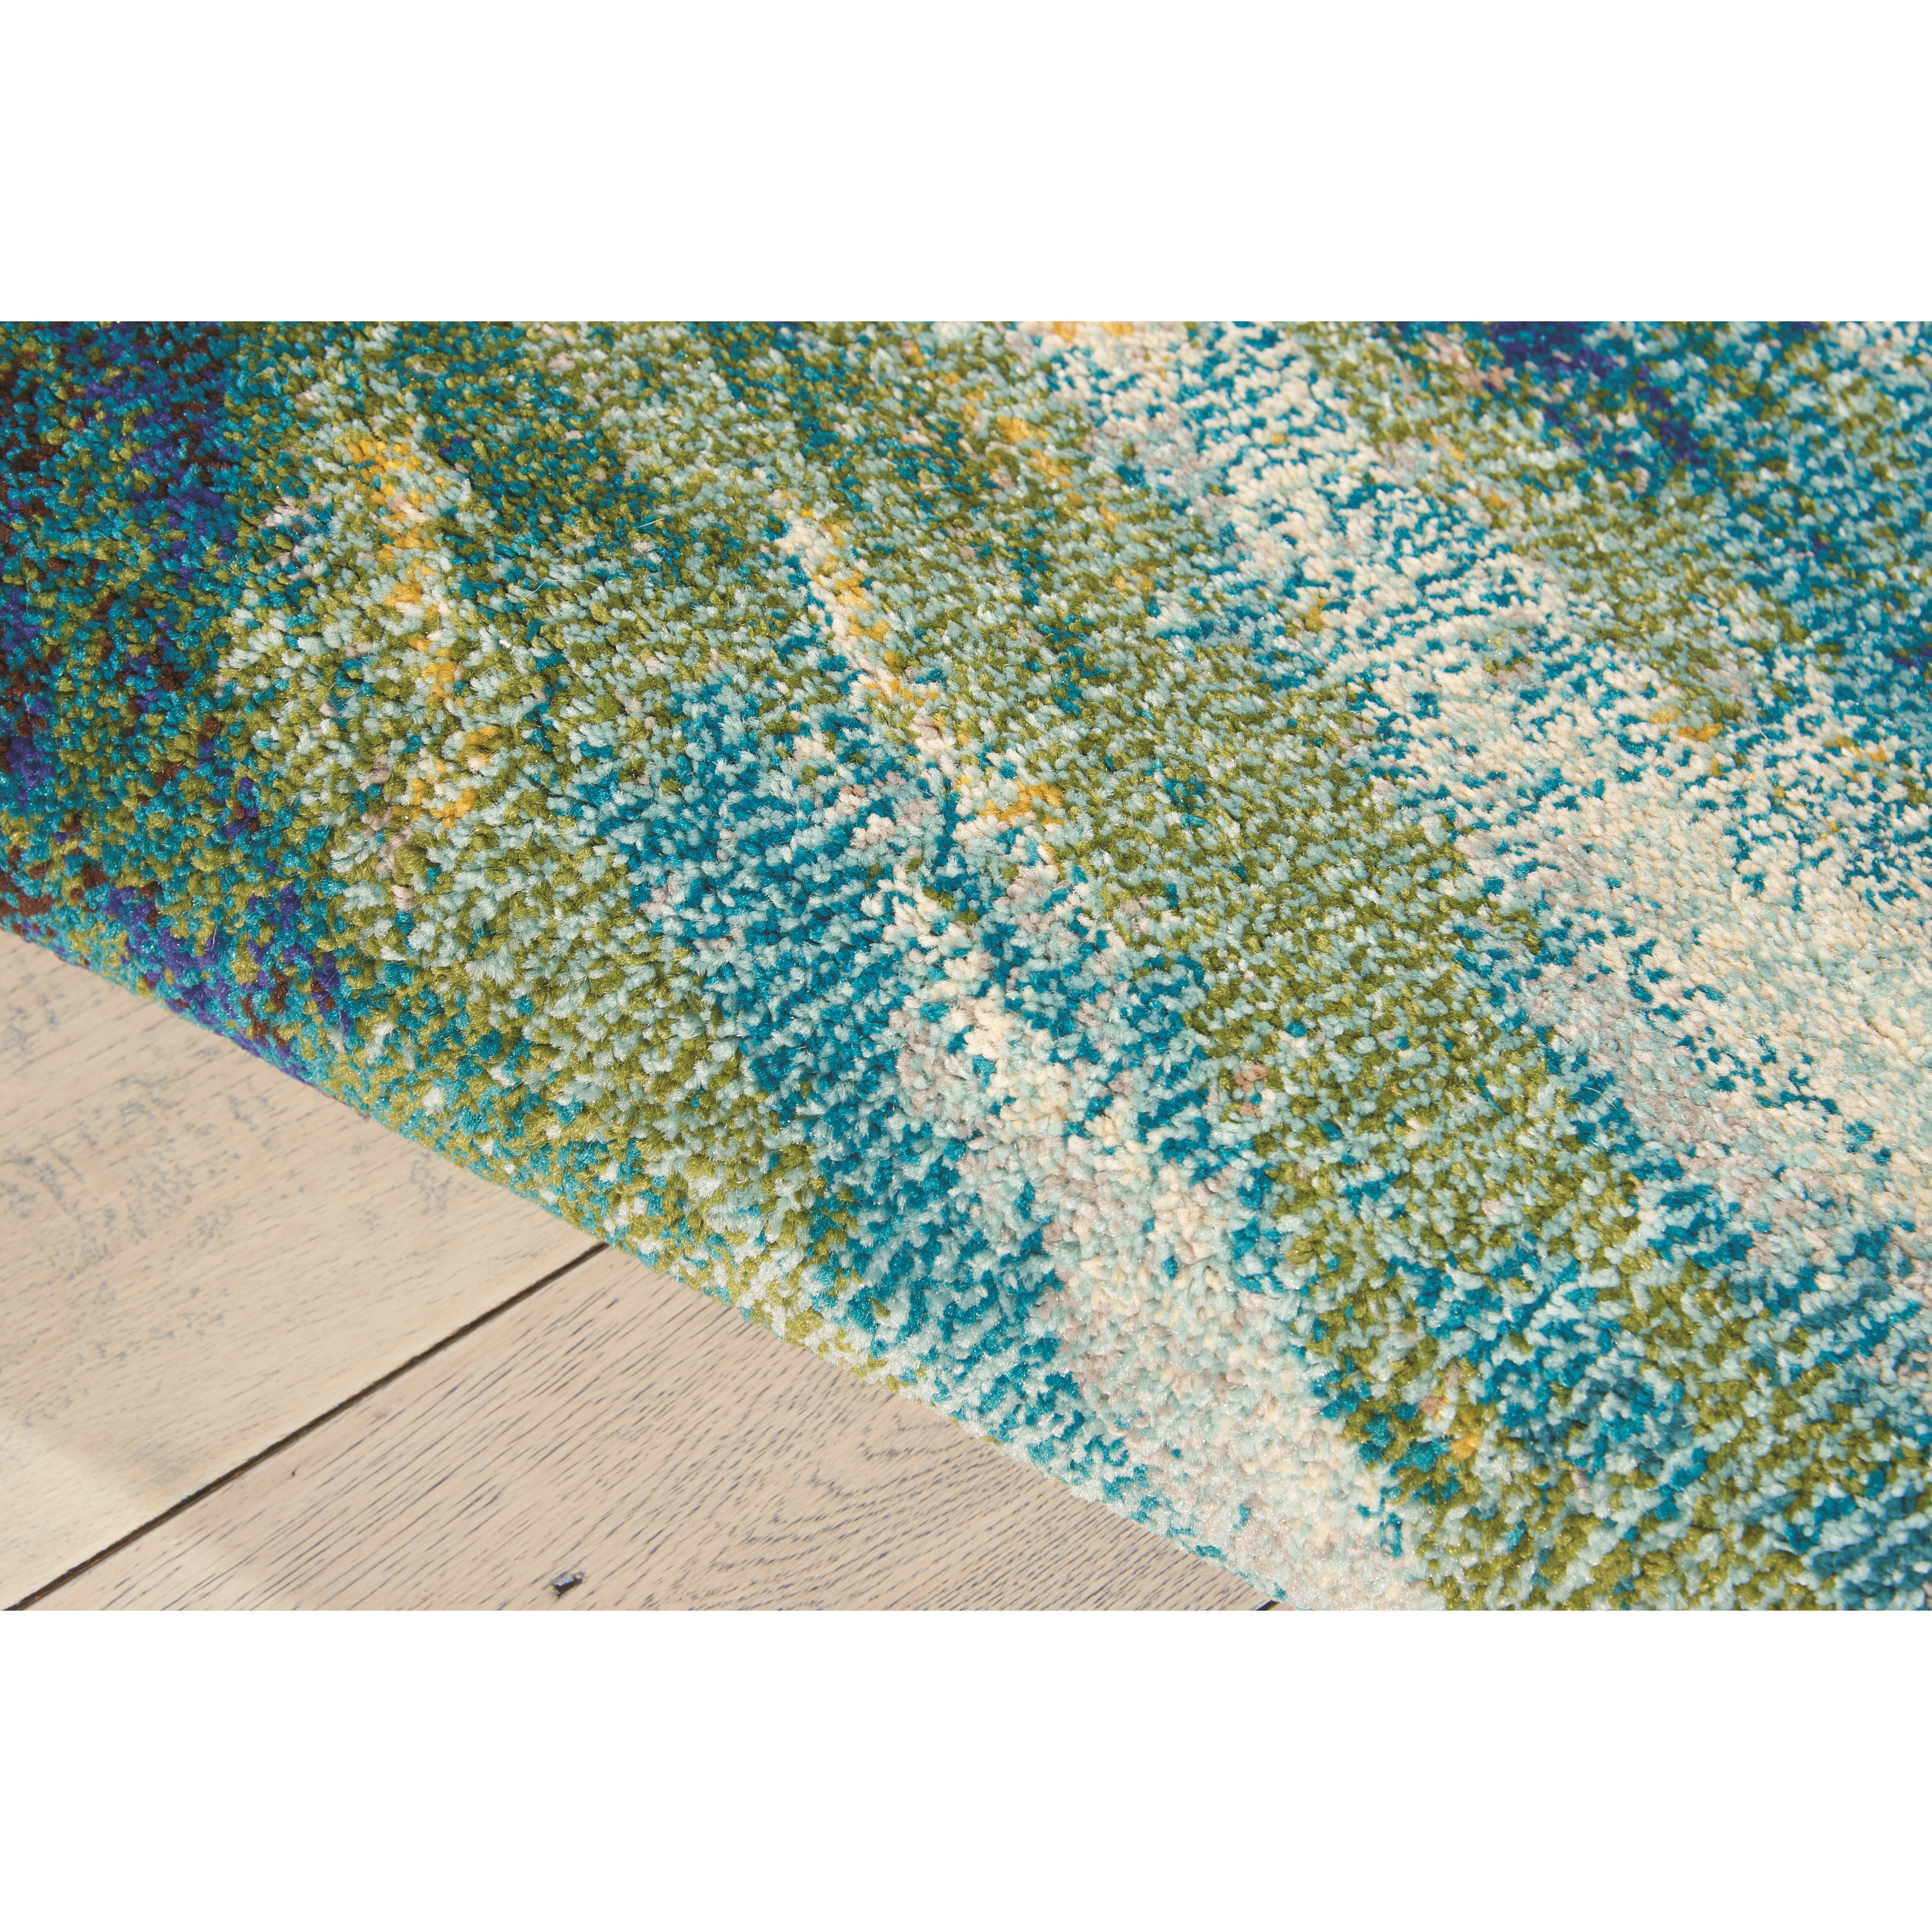 Latitude run abertamy wave area rug reviews wayfair for 10x10 living room rugs